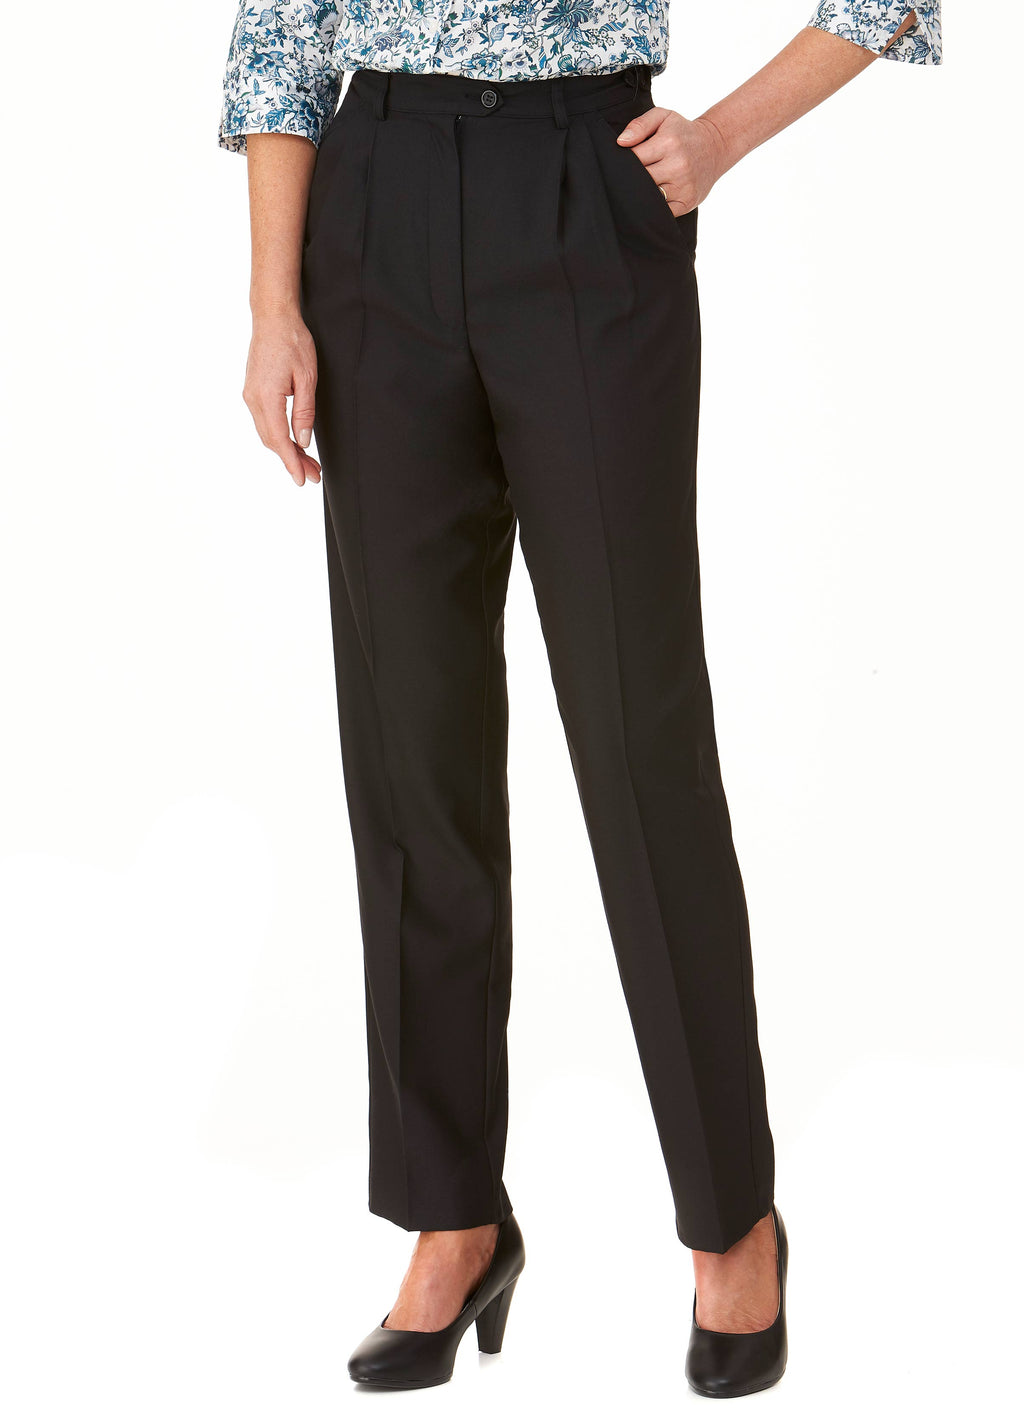 COLERAINE PLEATED PANT